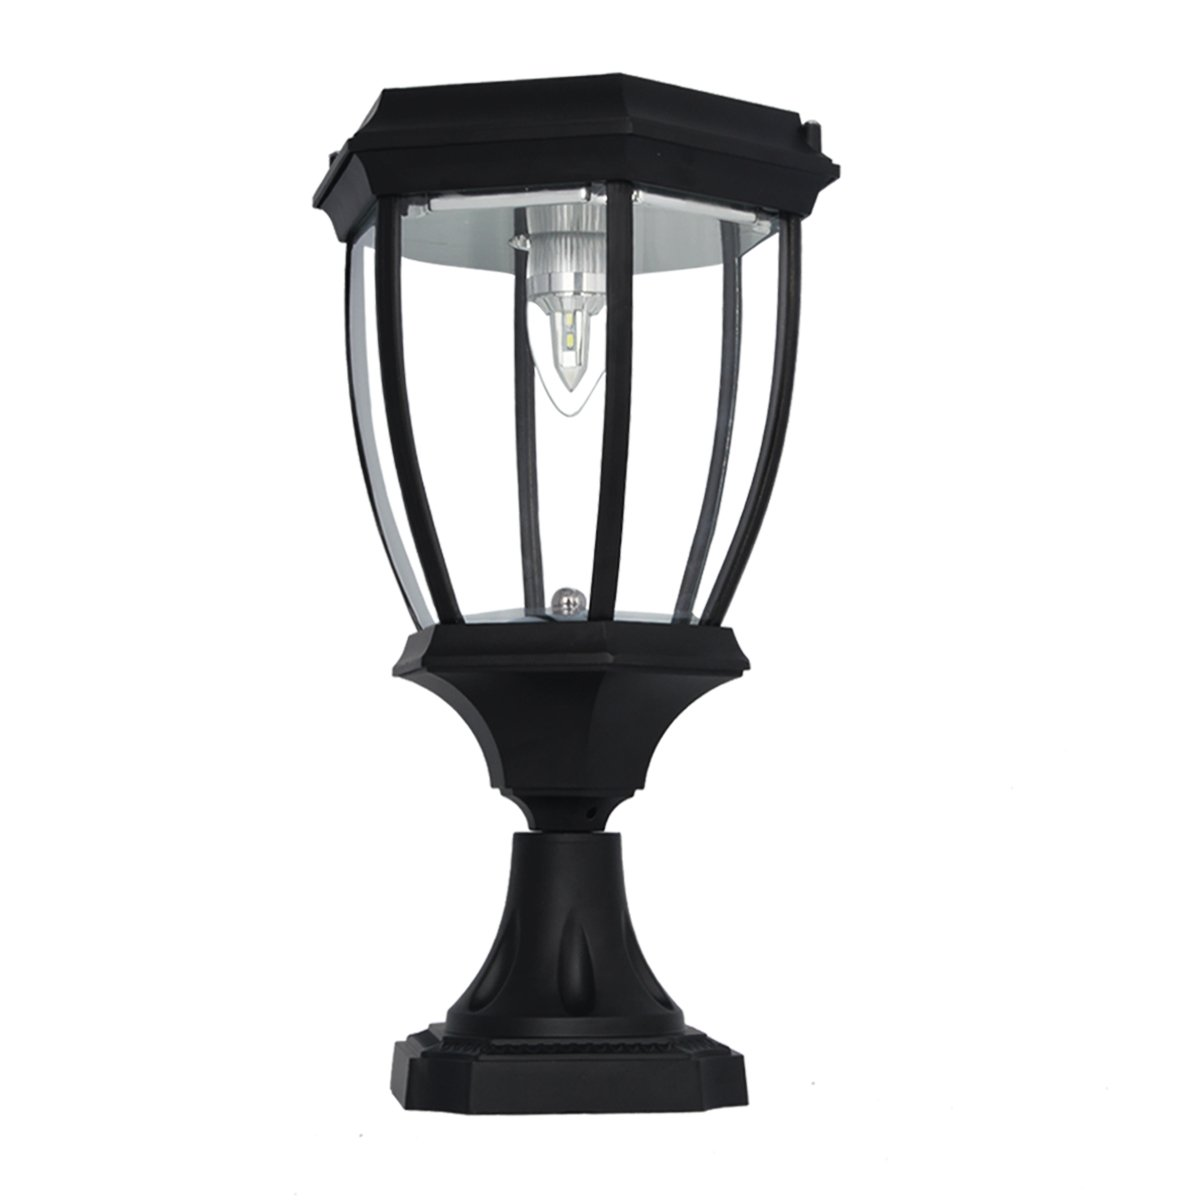 Large Outdoor Solar Powered LED Light Lamp SL-8405 by Kendal